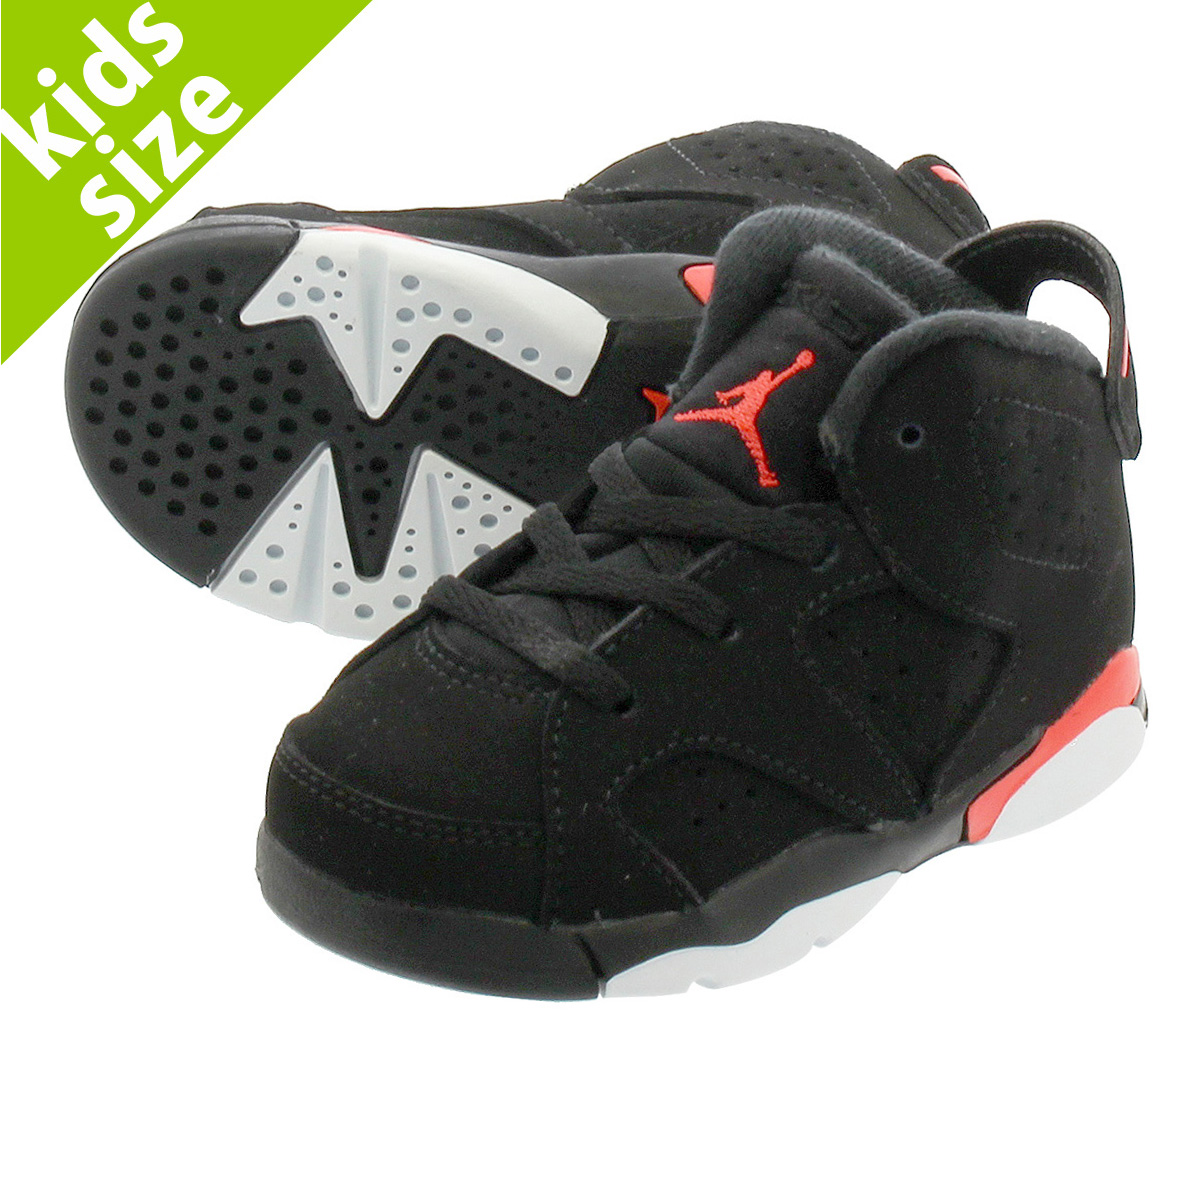 e40c30a6db9d  ベビーサイズ  8cm-16cm  NIKE AIR JORDAN 6 RETRO BT  BLACK INFRARED  ナイキ エア ジョーダン  6 レトロ BT BLACK INFRARED 384667-060  即日発送  NIKE ...